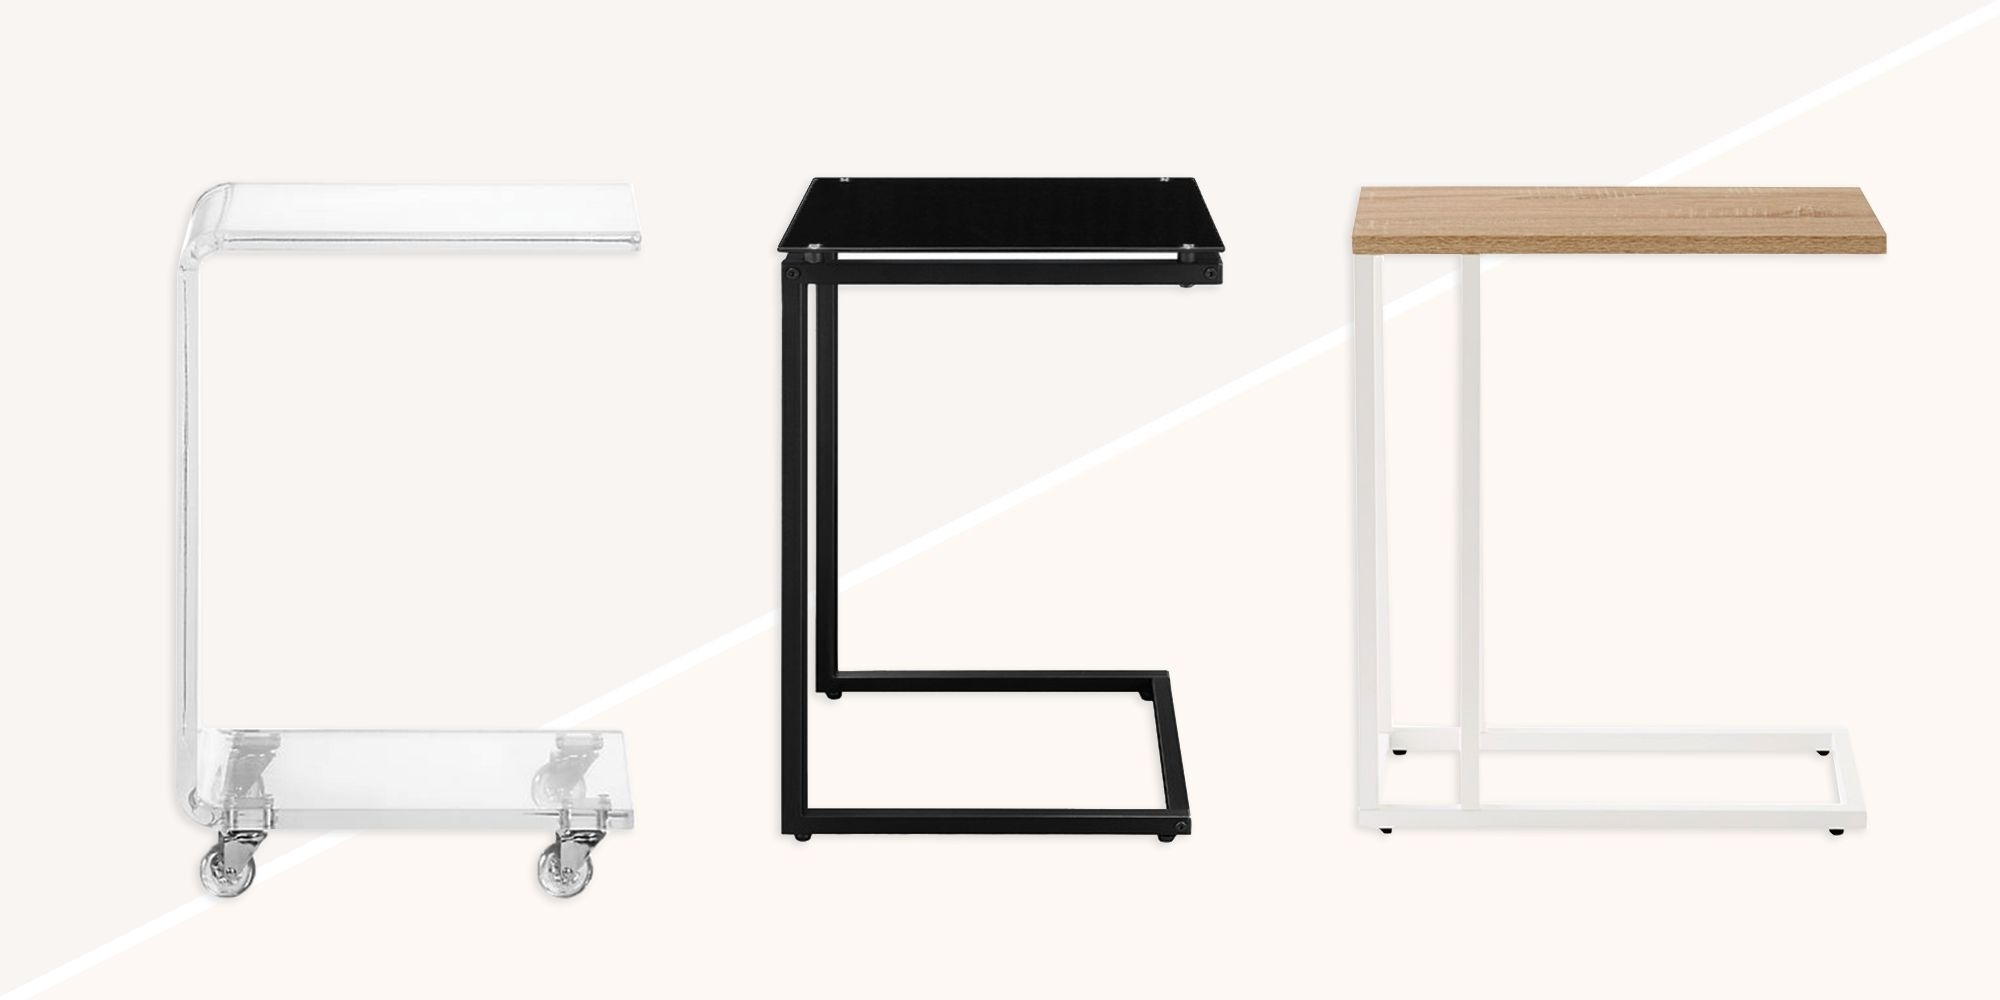 10 Best C Tables For Your Living Room 2018 - C Shaped End And Side throughout Peekaboo Acrylic Tall Coffee Tables (Image 1 of 30)